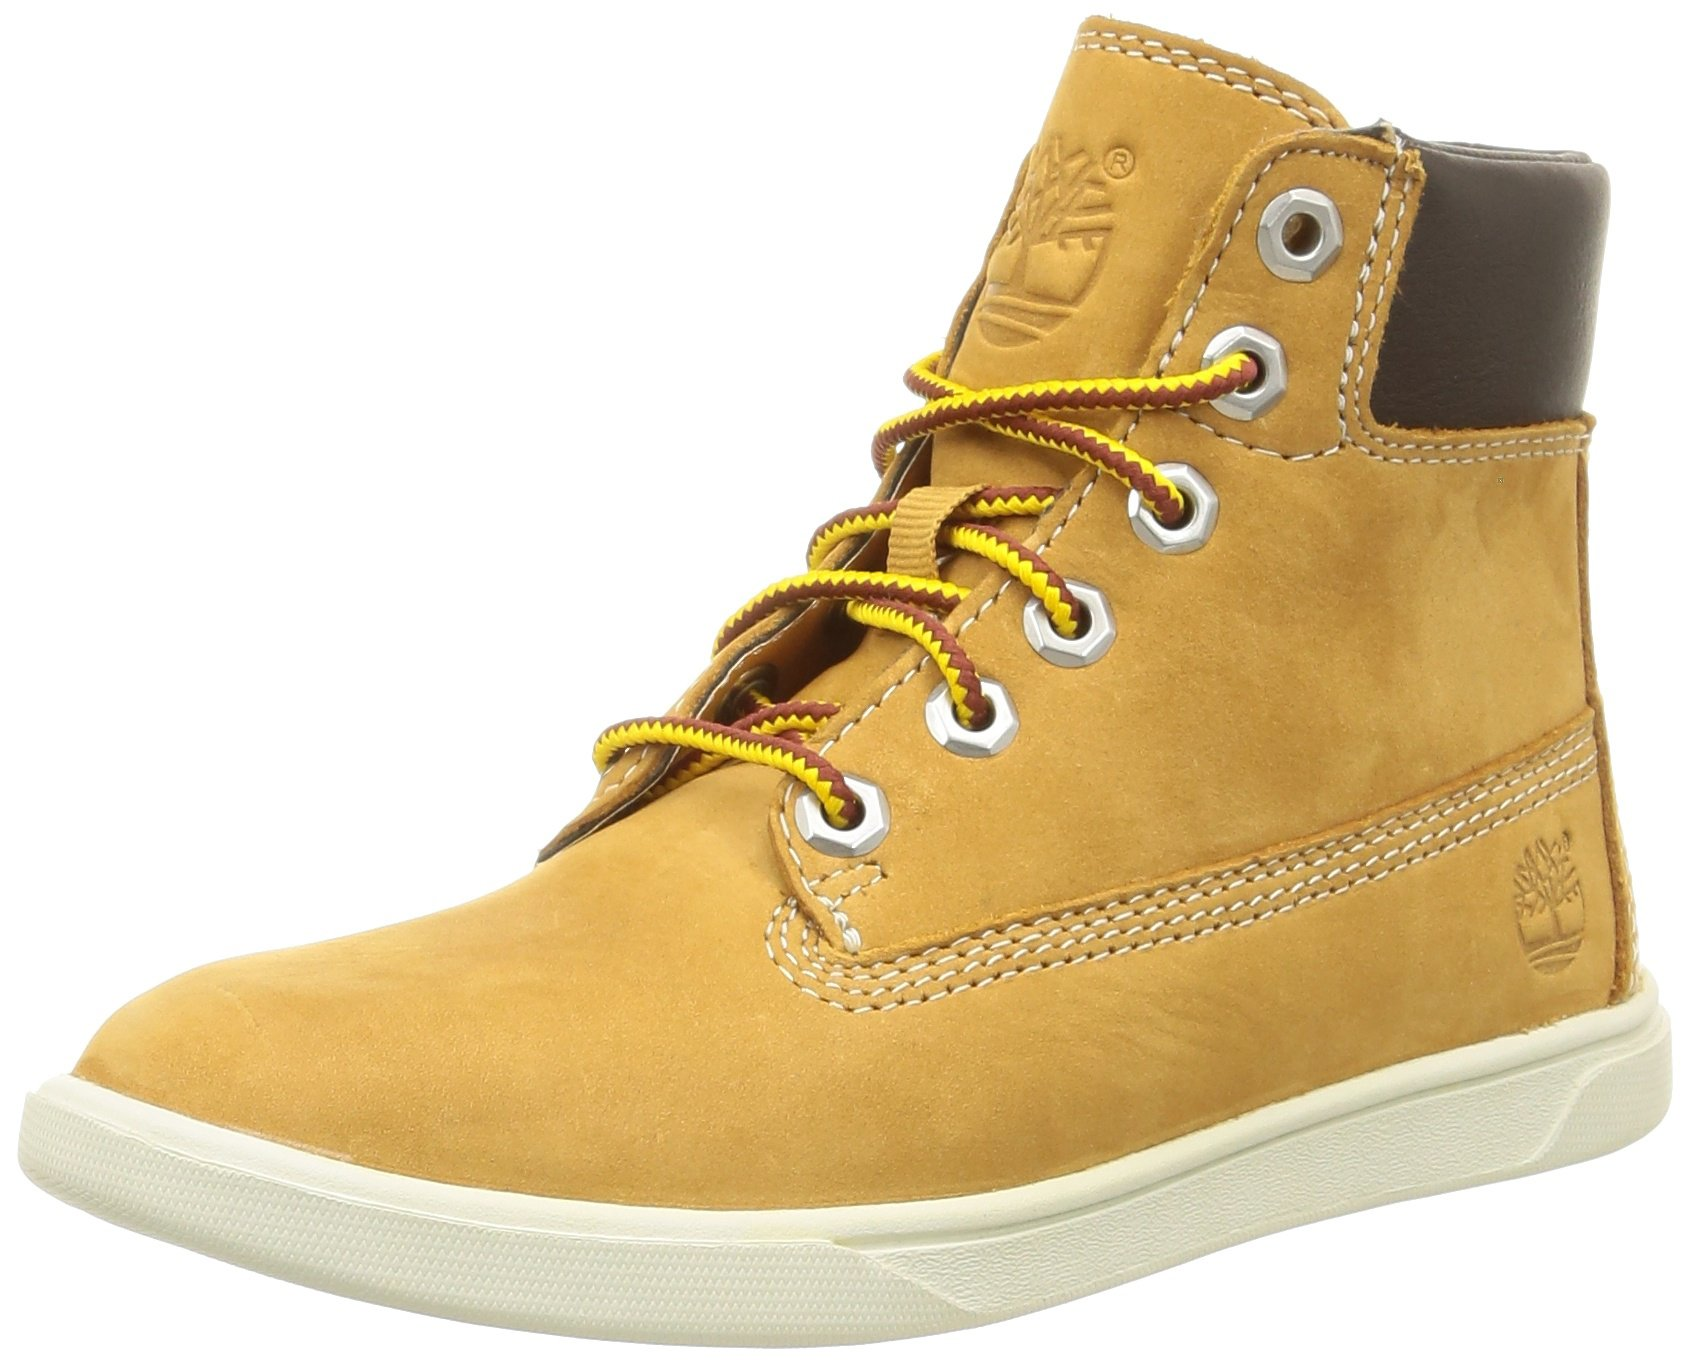 Timberland Kids Groveton 6-Inch Lace With Side Zip Boots, Wheat, 6.5 M US Big Kid